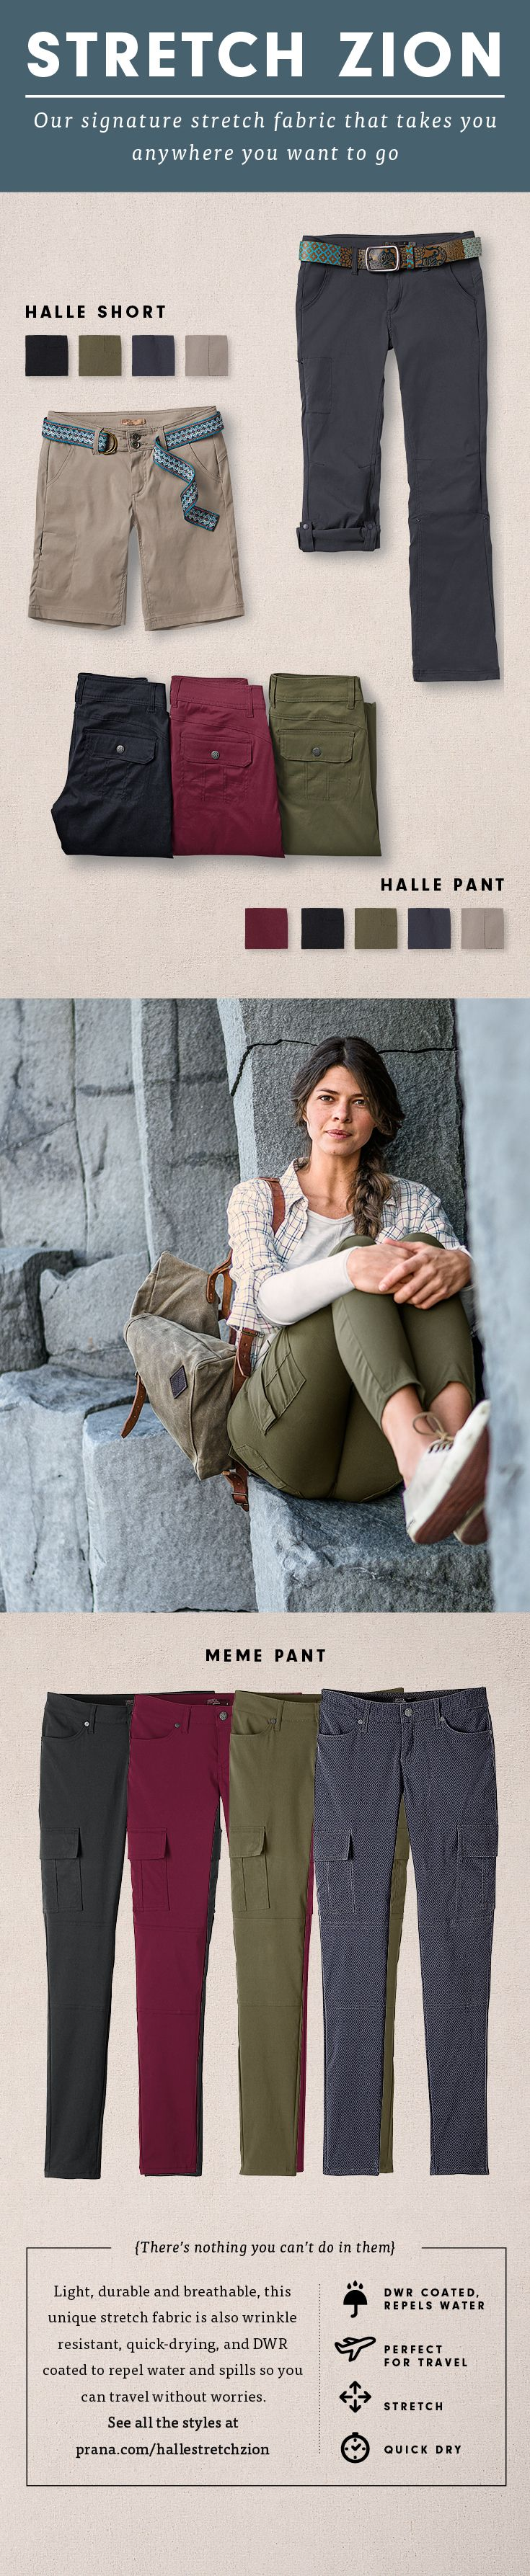 Outfit your next outdoor adventure with the ultimate in versatility and sustainable style! Find your favorite way to wear this light, durable travel must-have at prAna.com.